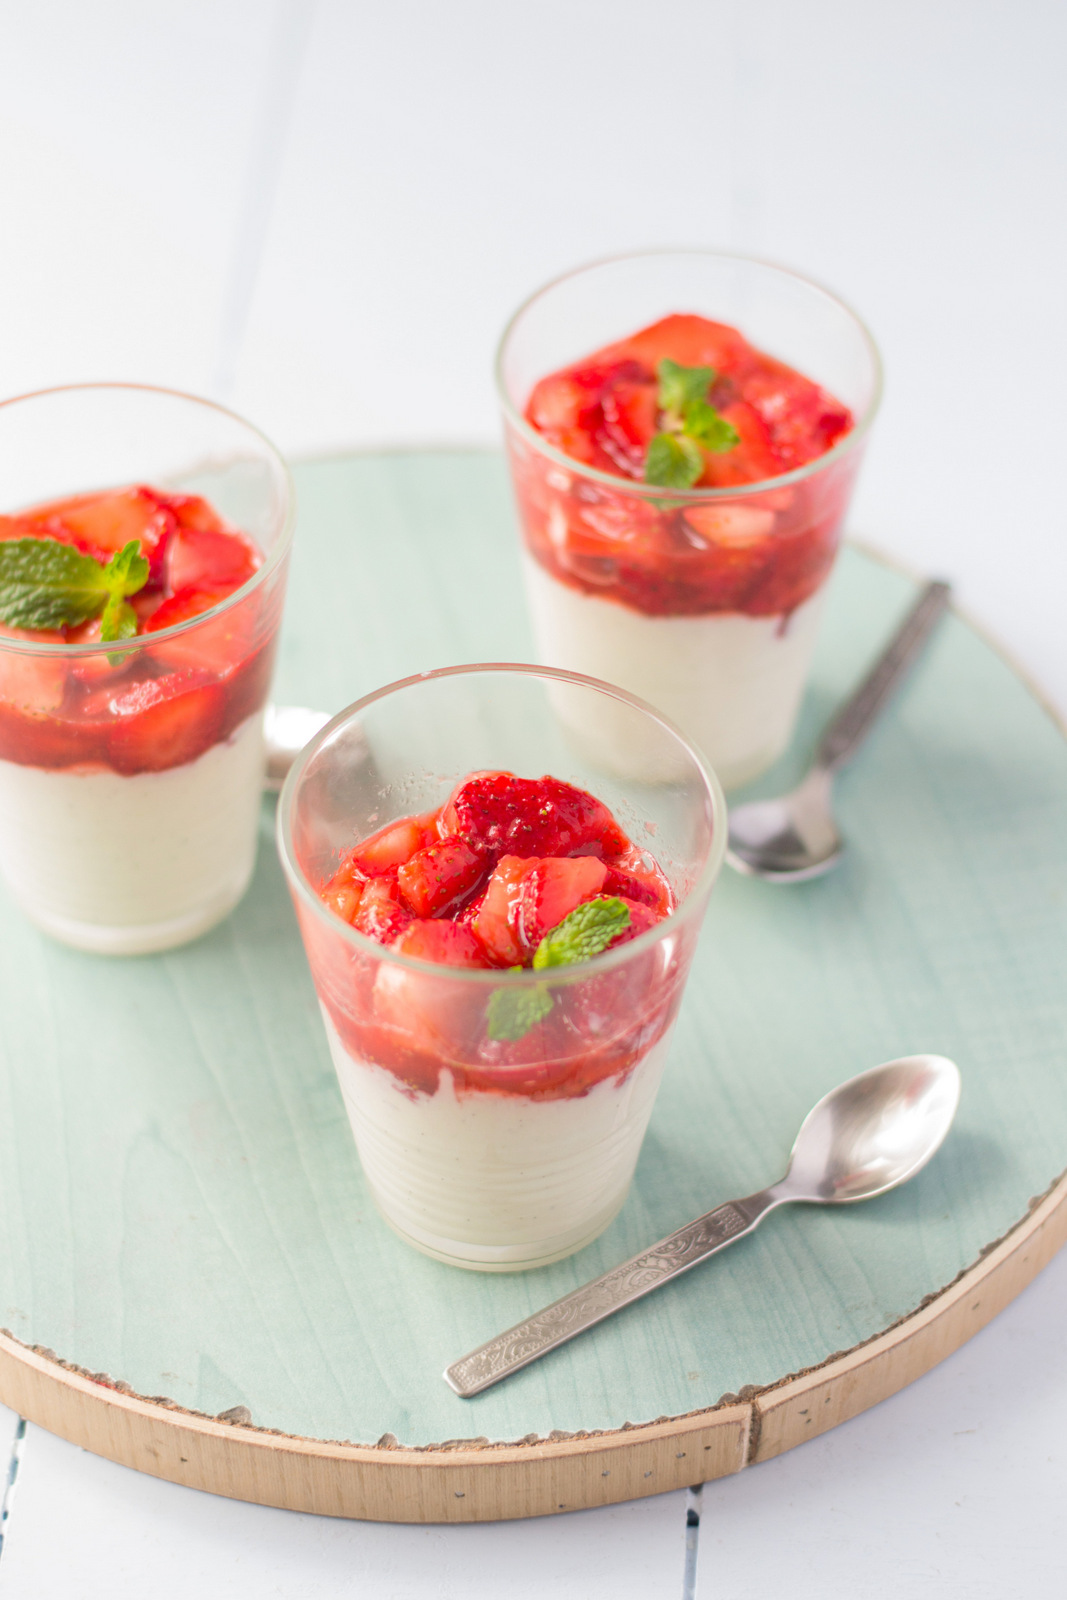 White Chocolate Mousse With Macerated Strawberries - The ...